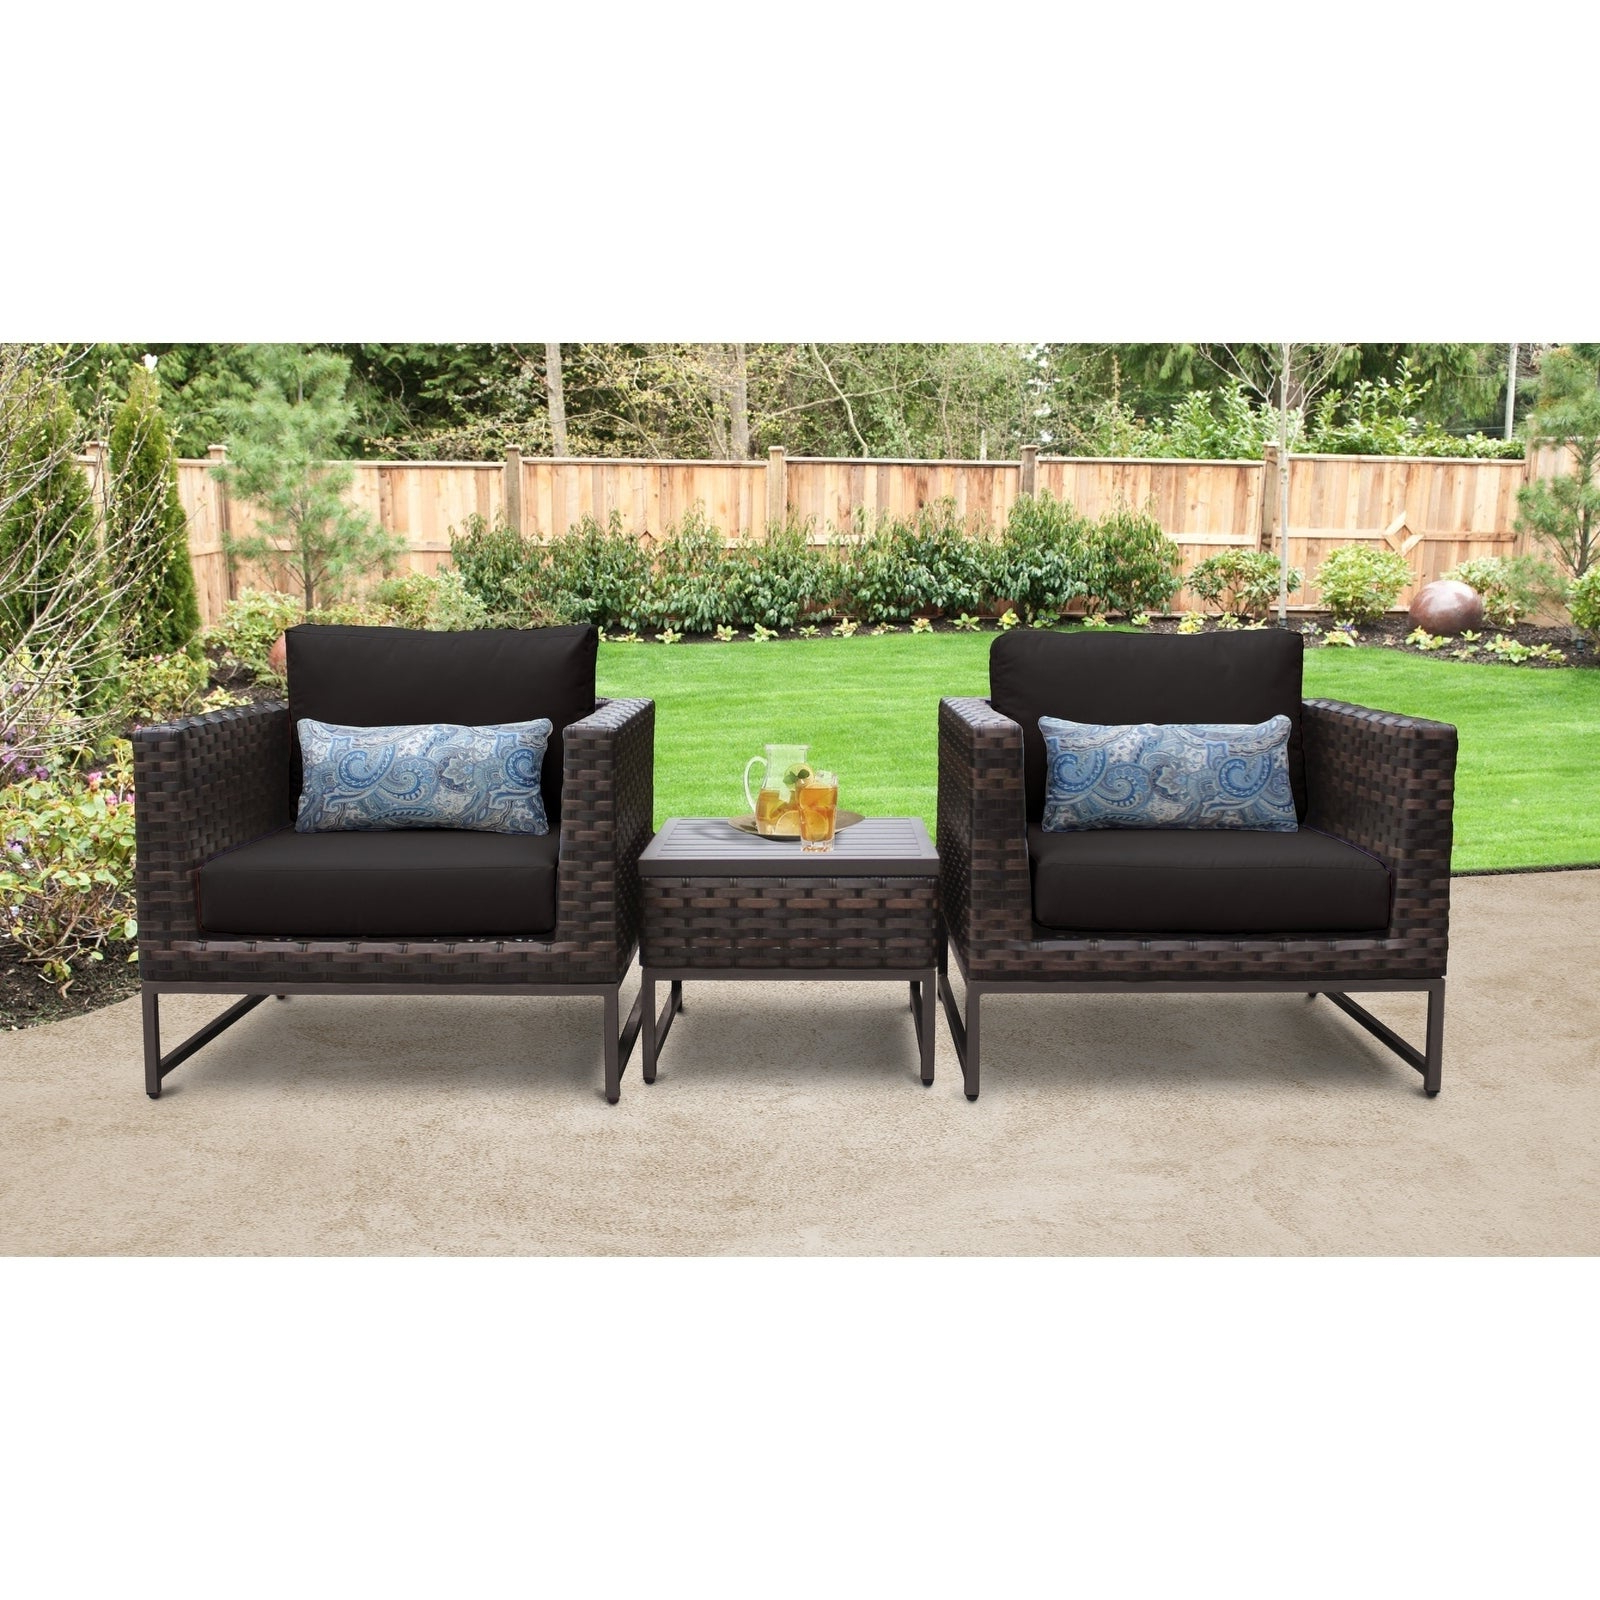 Baca Patio Sofas With Cushions Pertaining To Preferred Barcelona 3 Piece Outdoor Wicker Patio Furniture Set 03A (View 5 of 25)